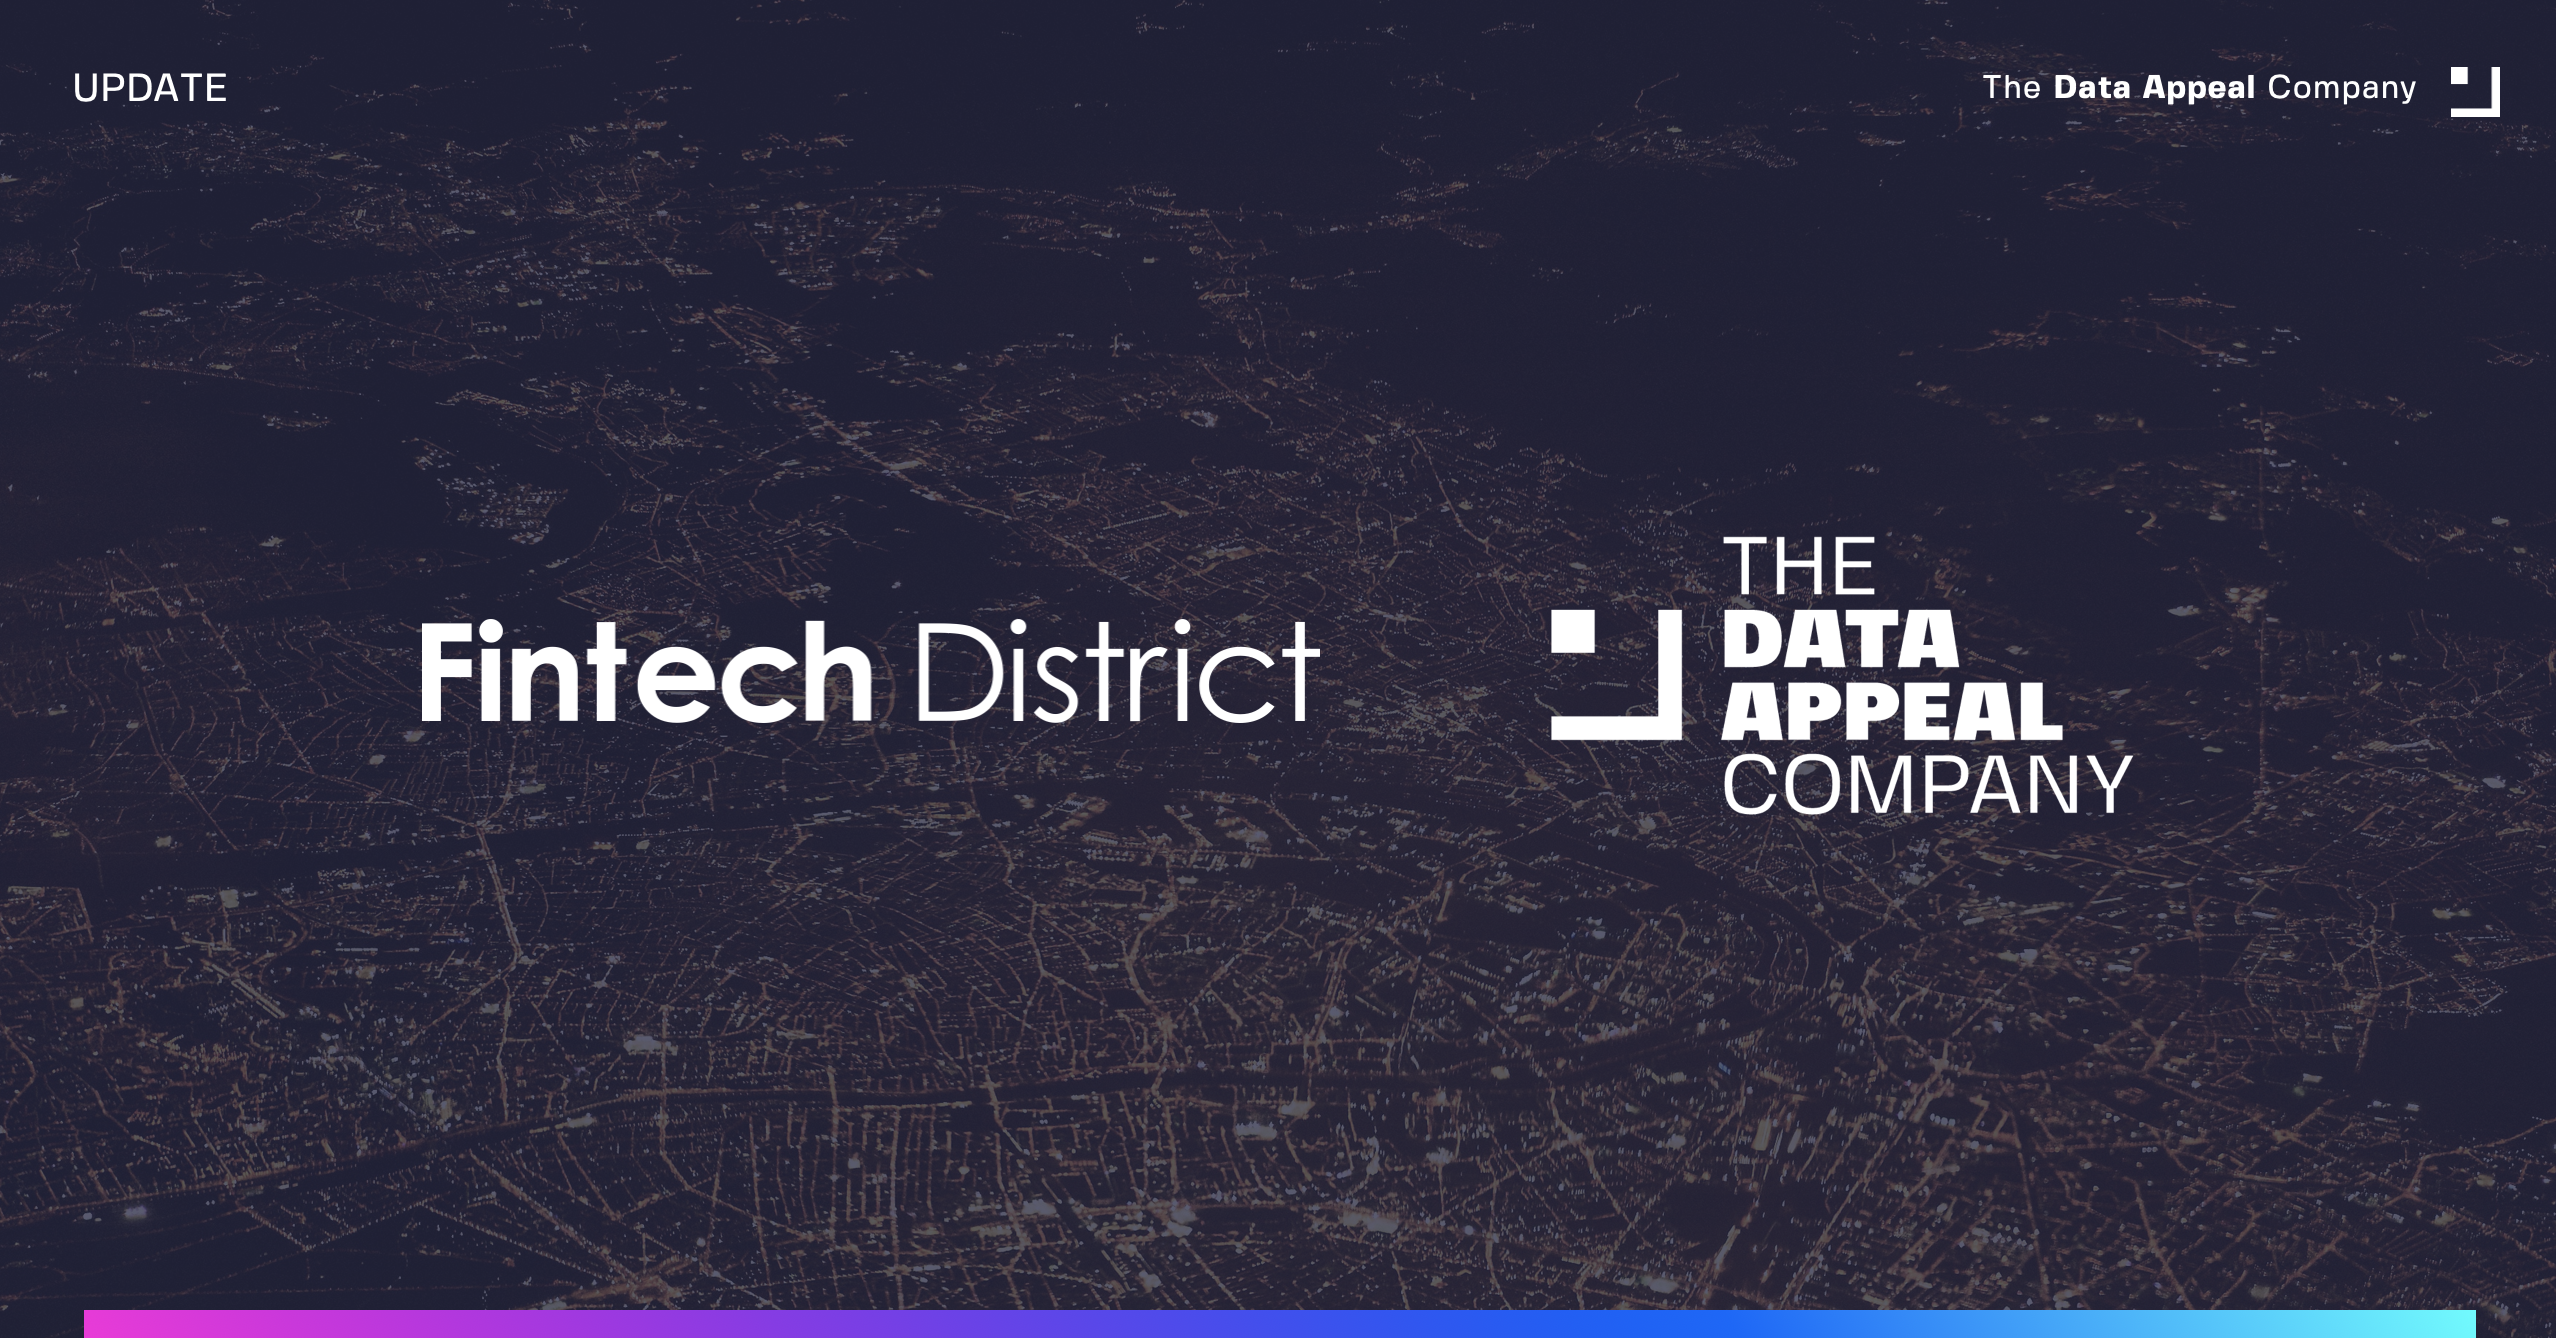 Fintech District